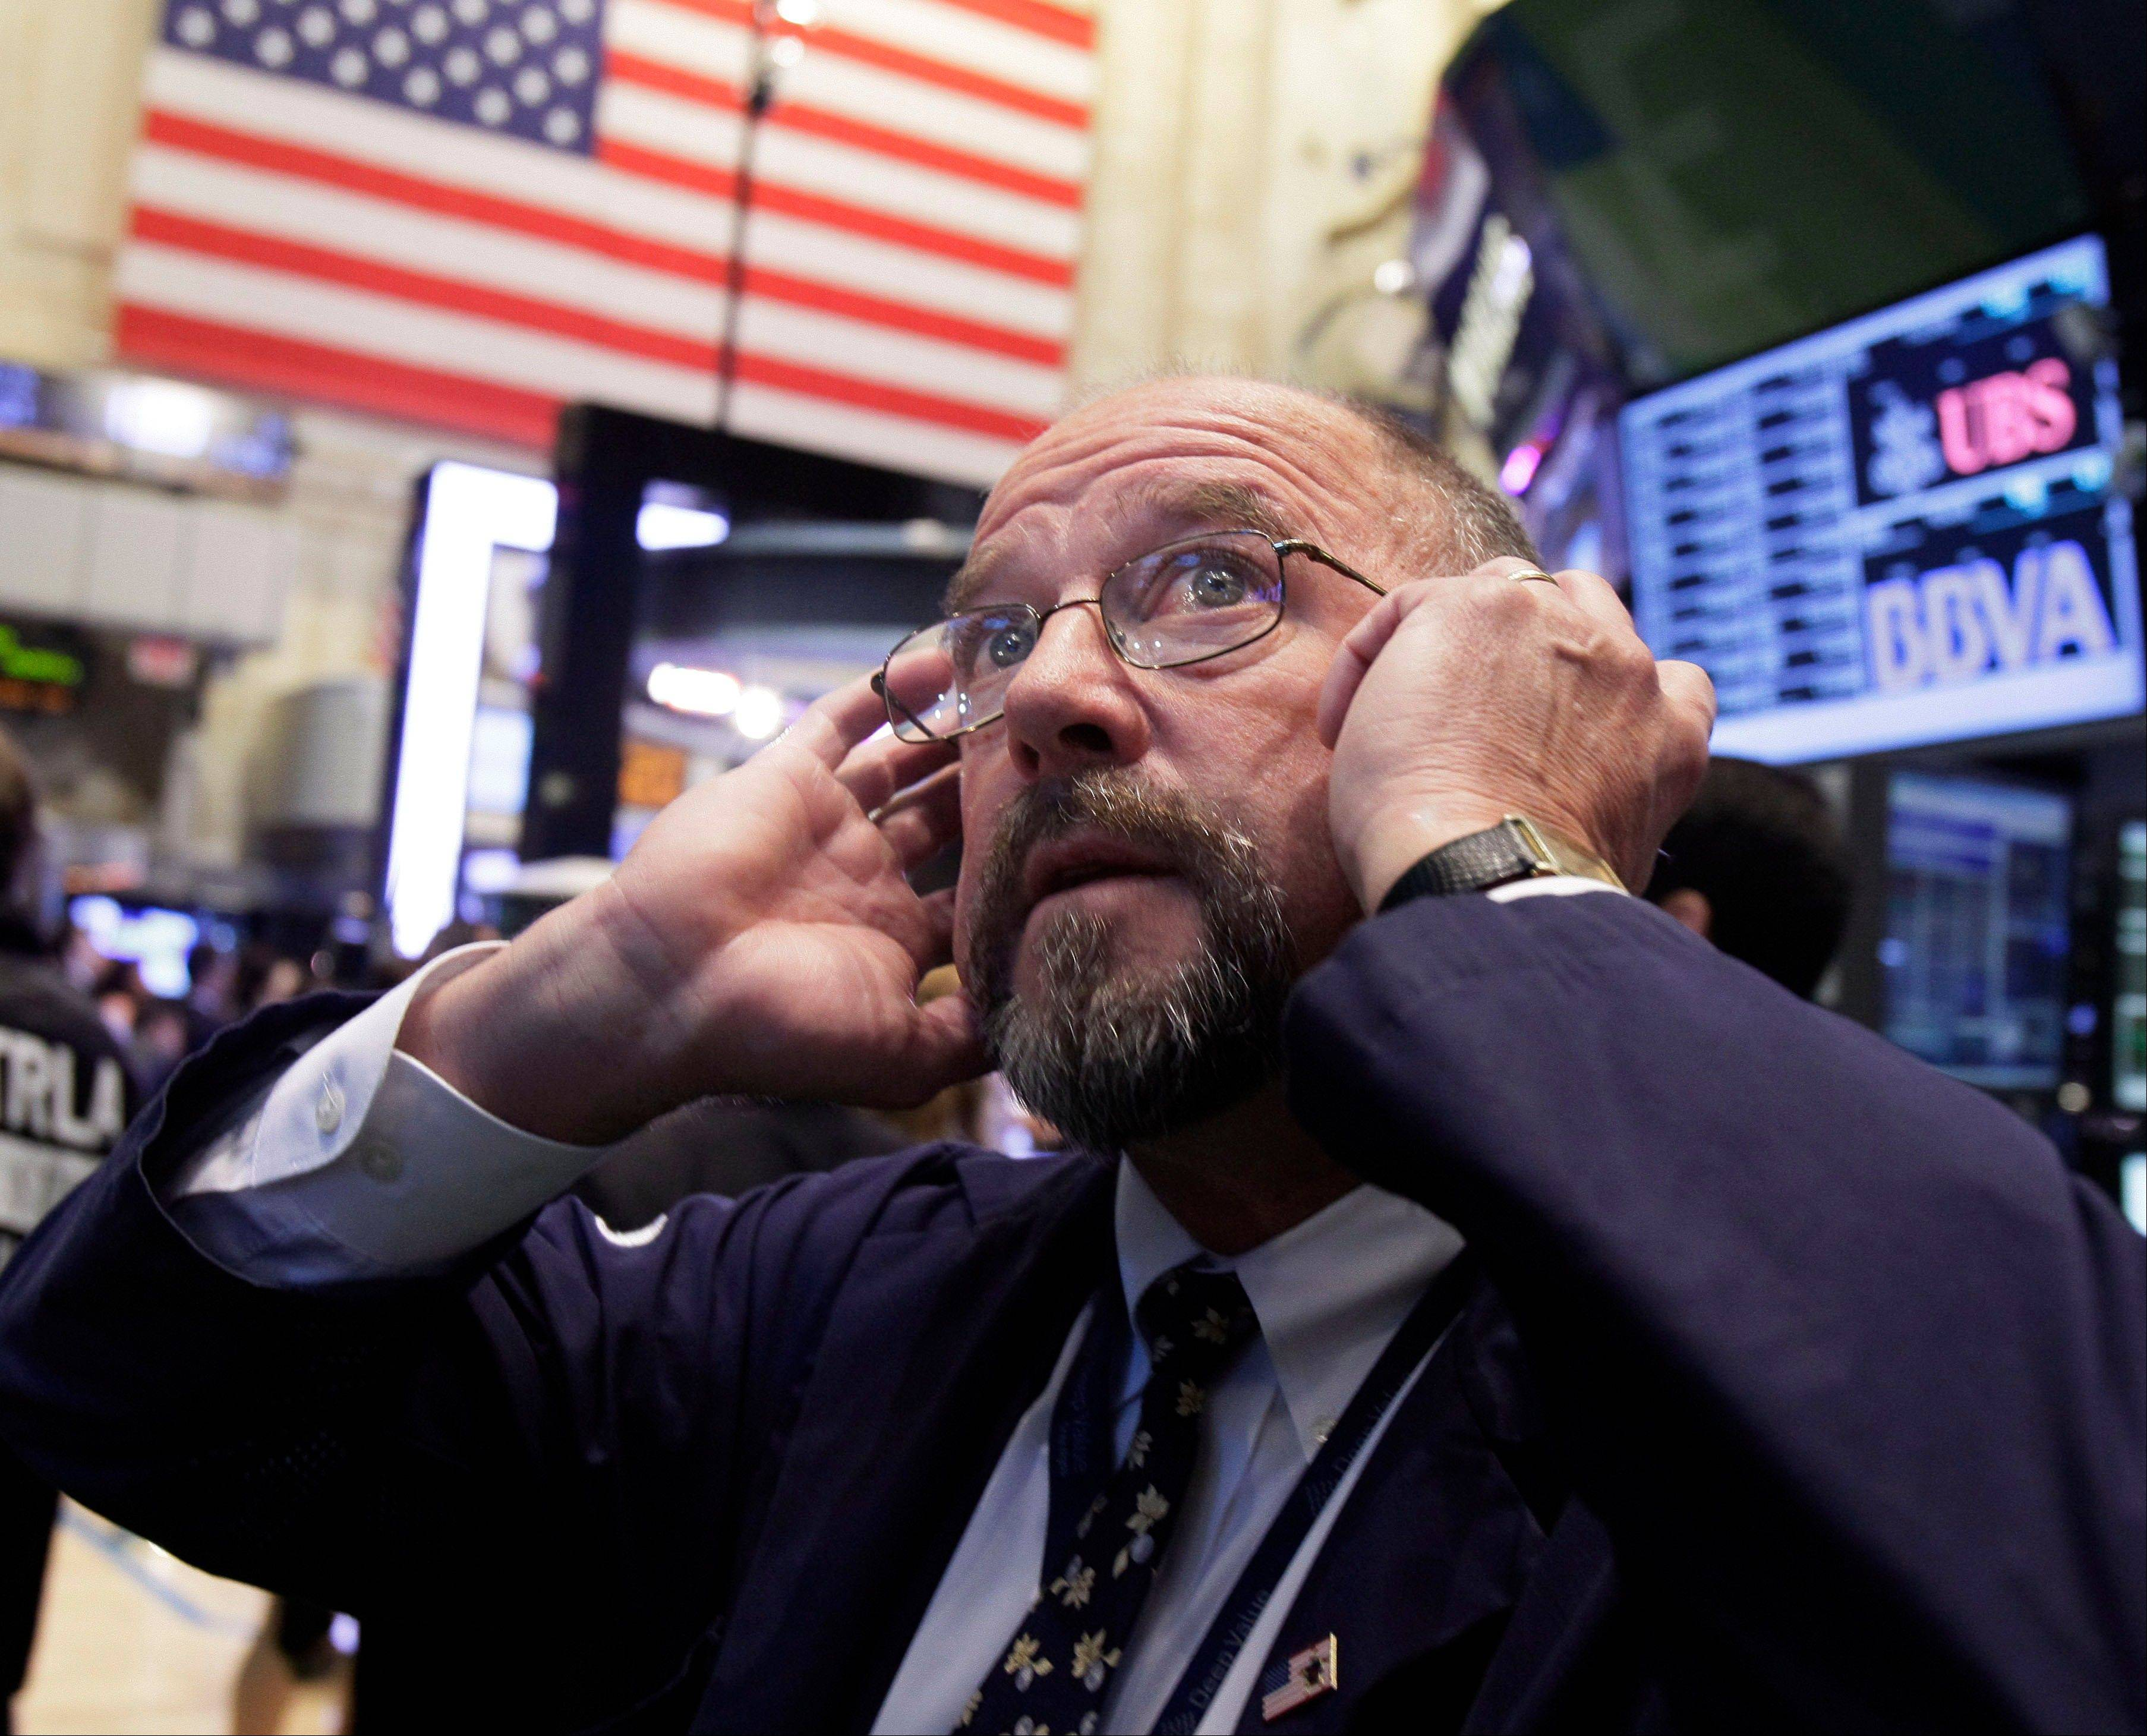 Most U.S. stocks fell Thursday, sending the Standard & Poor's 500 Index lower for the third time in four days, as data from China to Japan and Europe increased concern that a global economic slowdown is worsening.